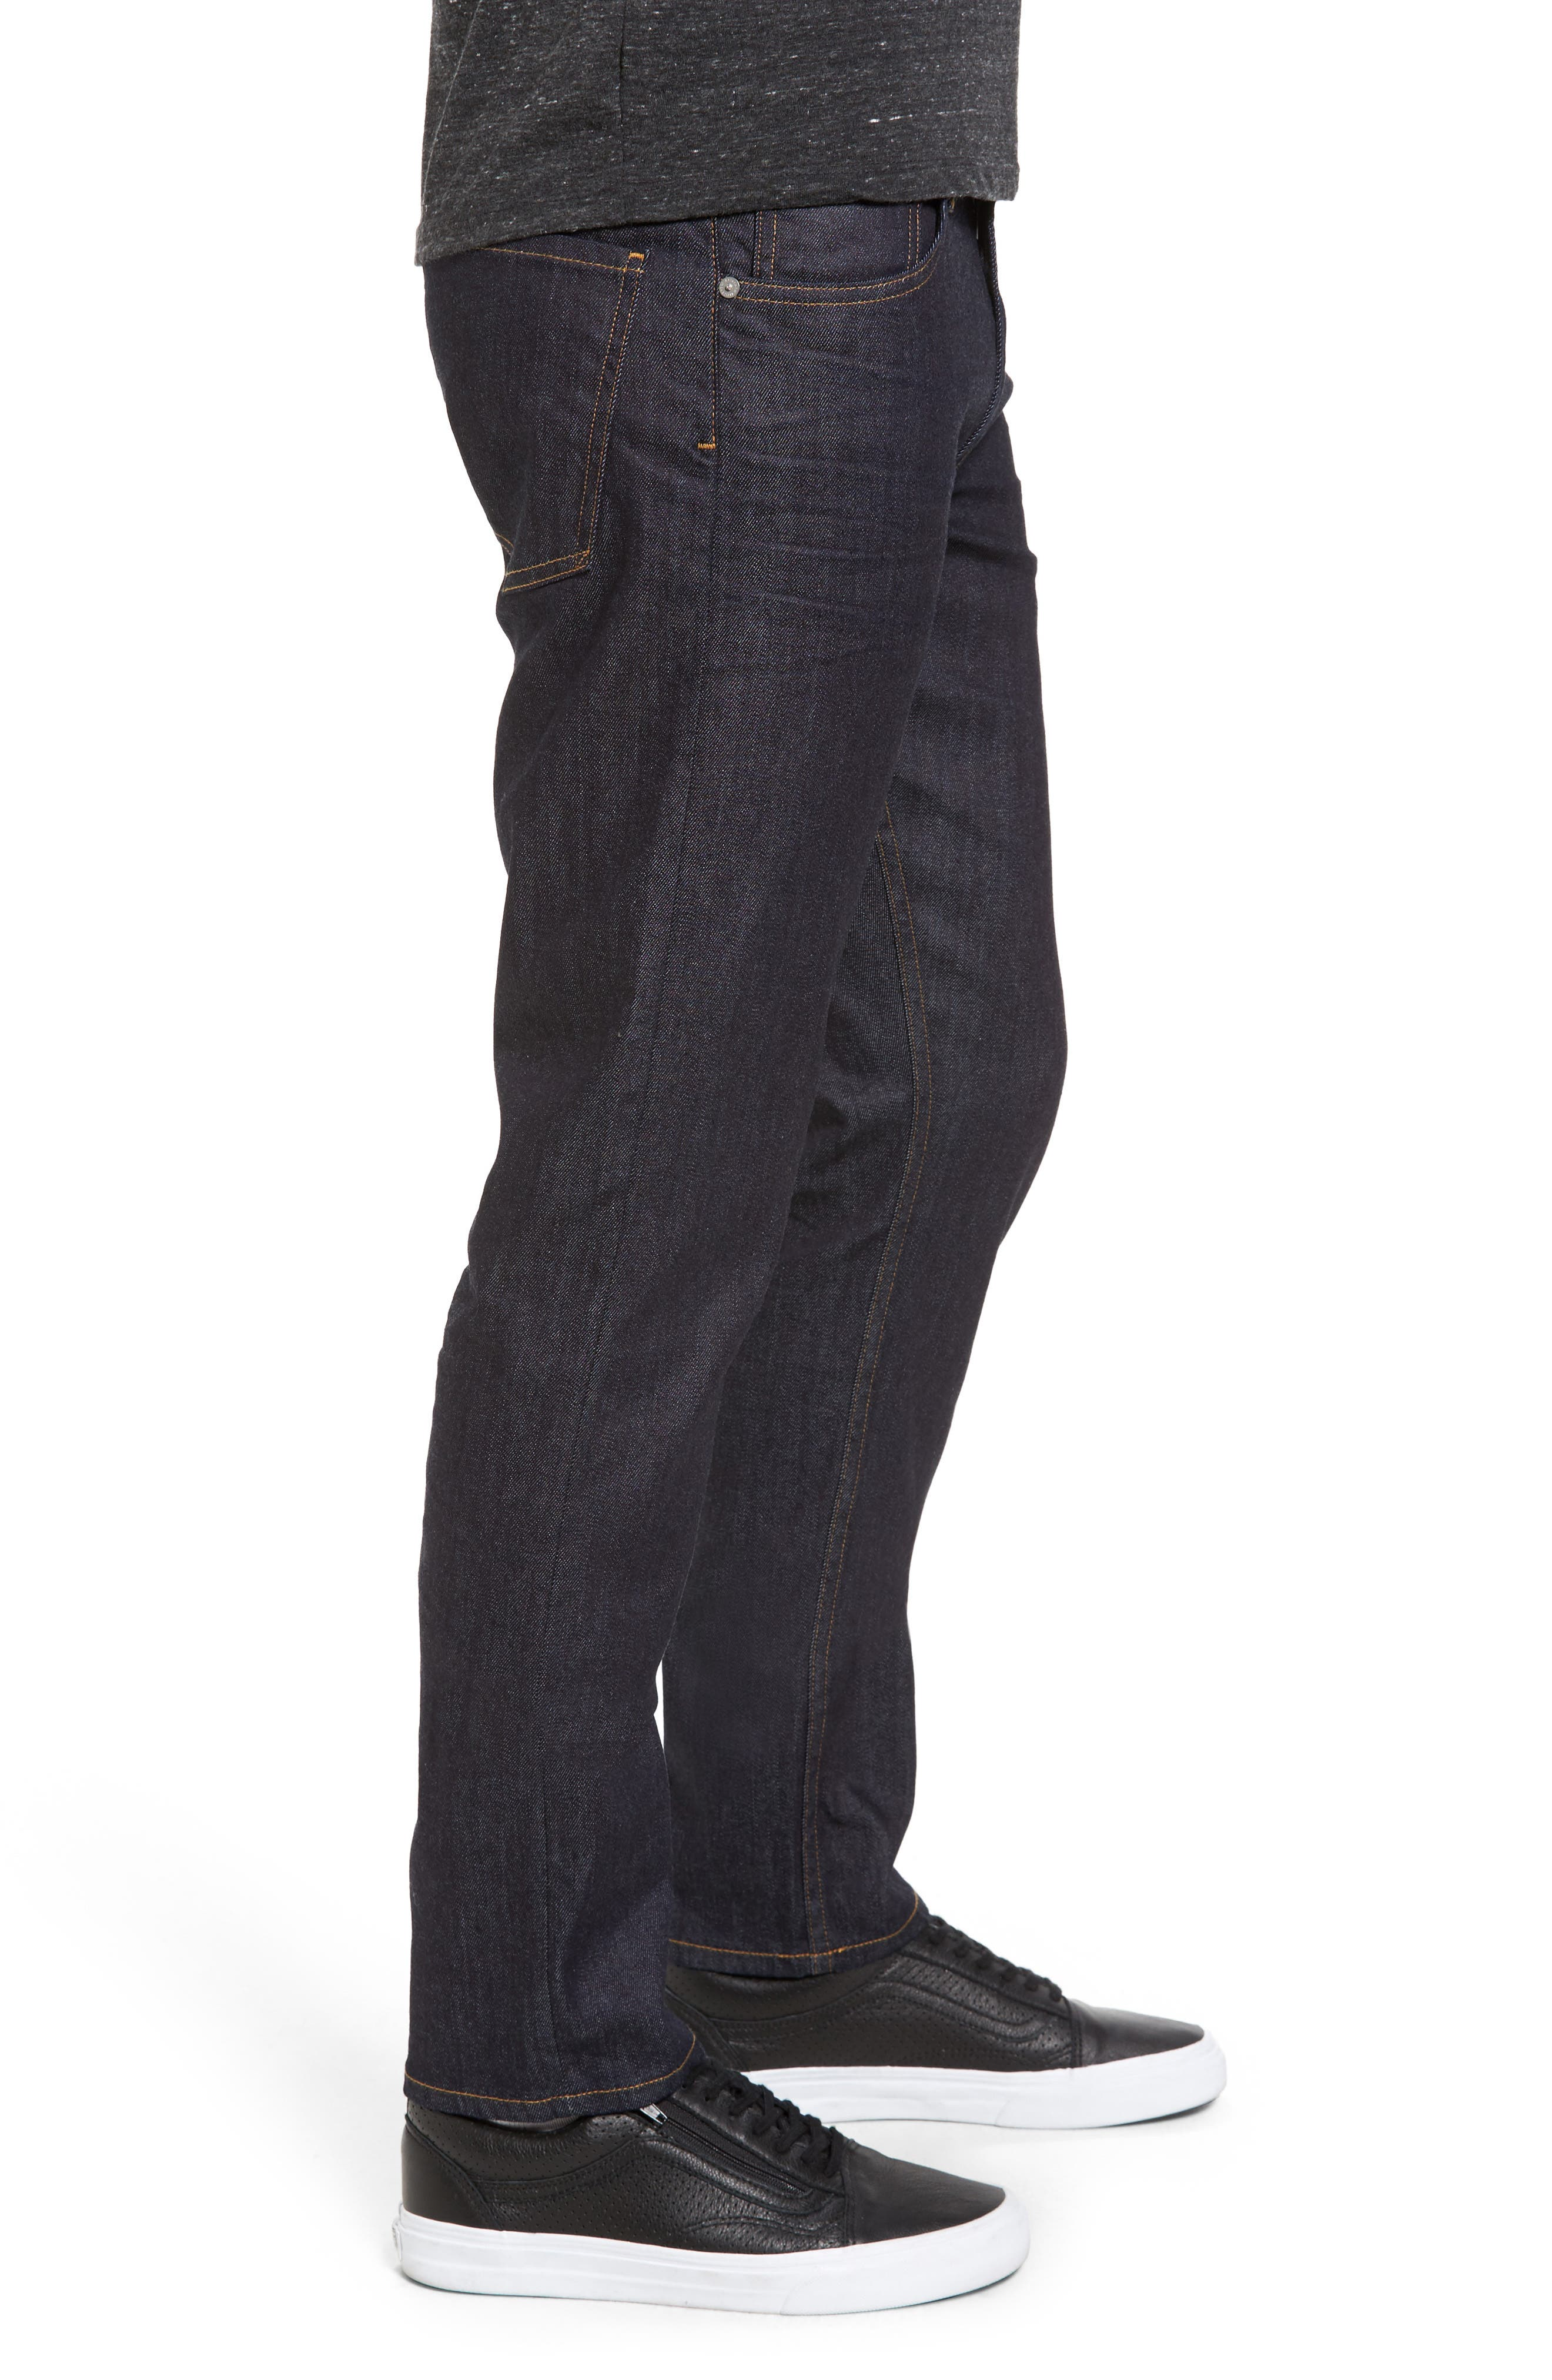 Bowery Slim Fit Jeans,                             Alternate thumbnail 4, color,                             432